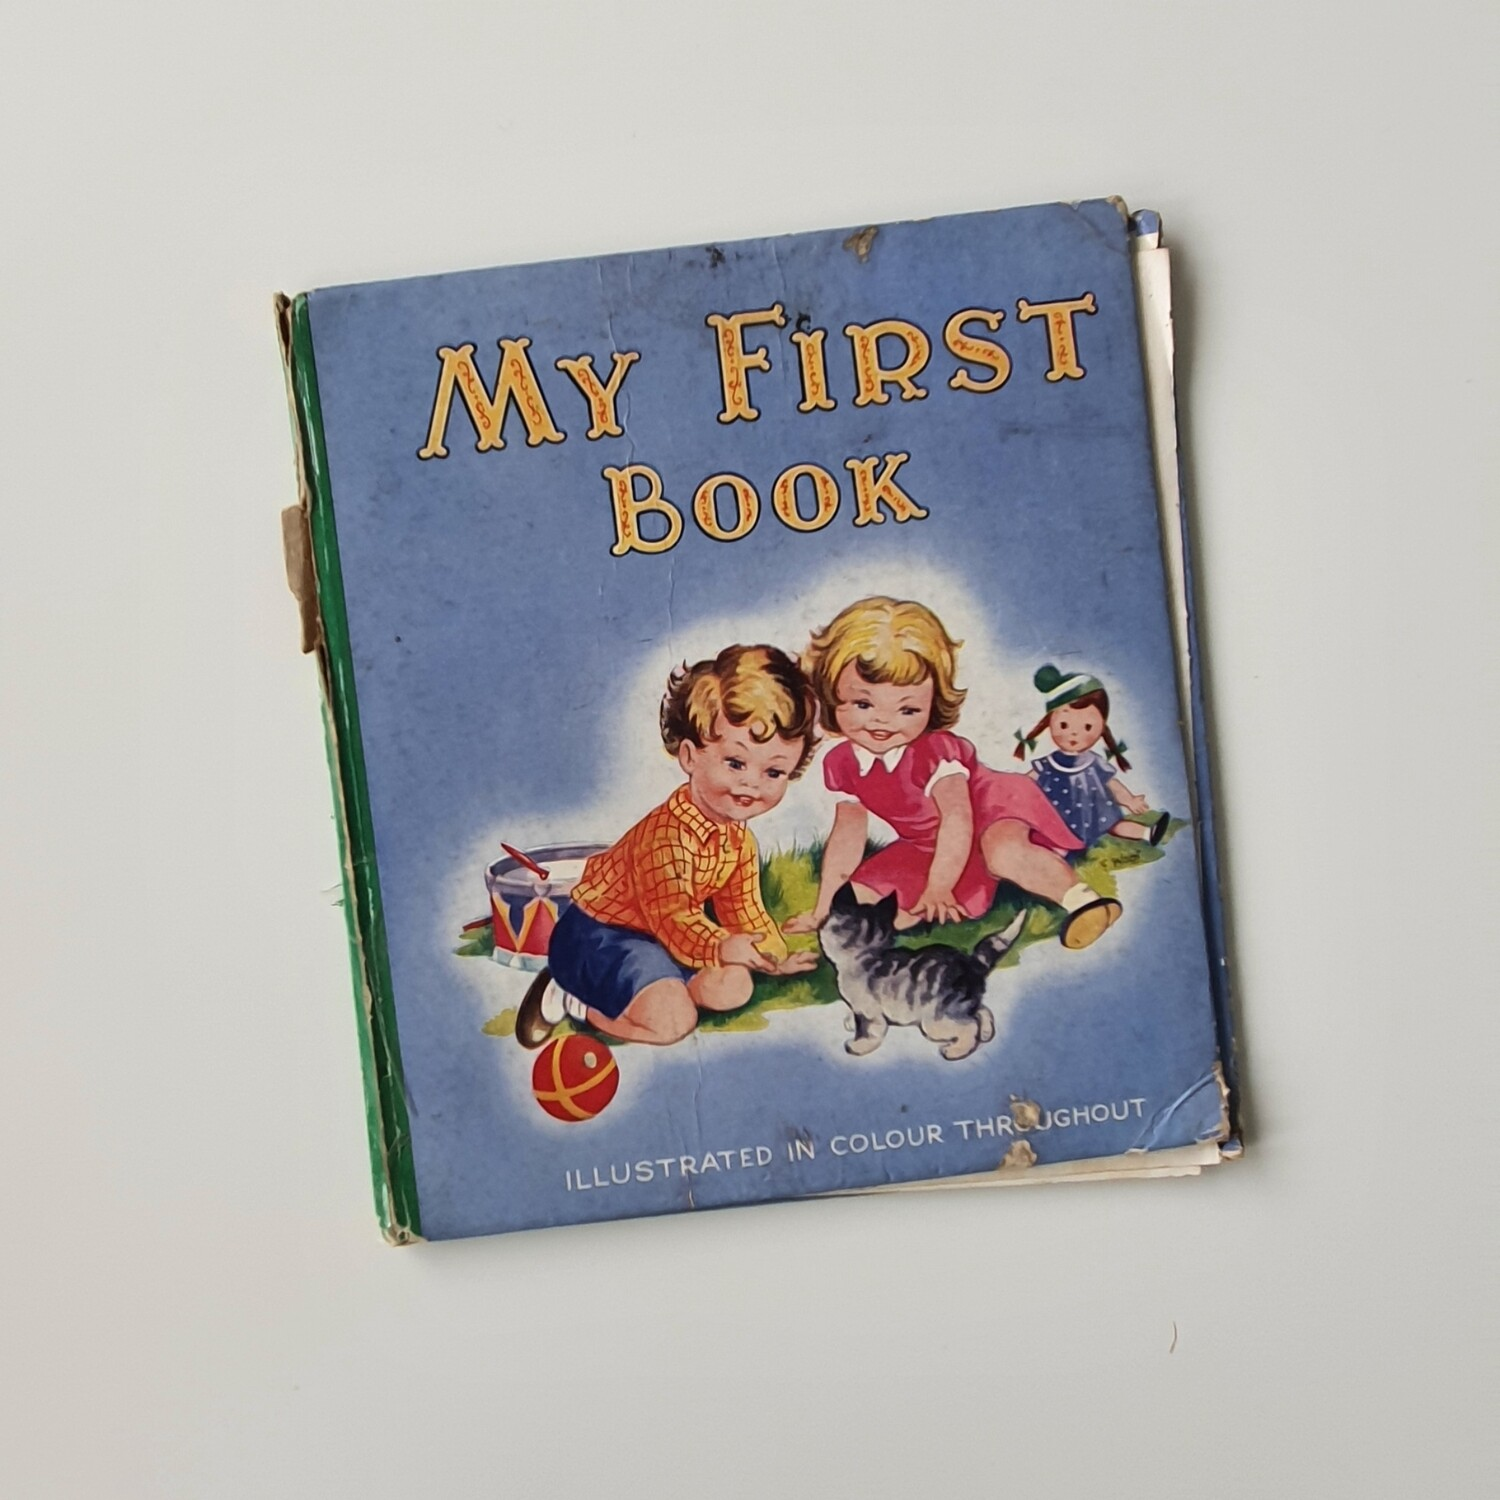 My First Book childrens vintage book c.1950s